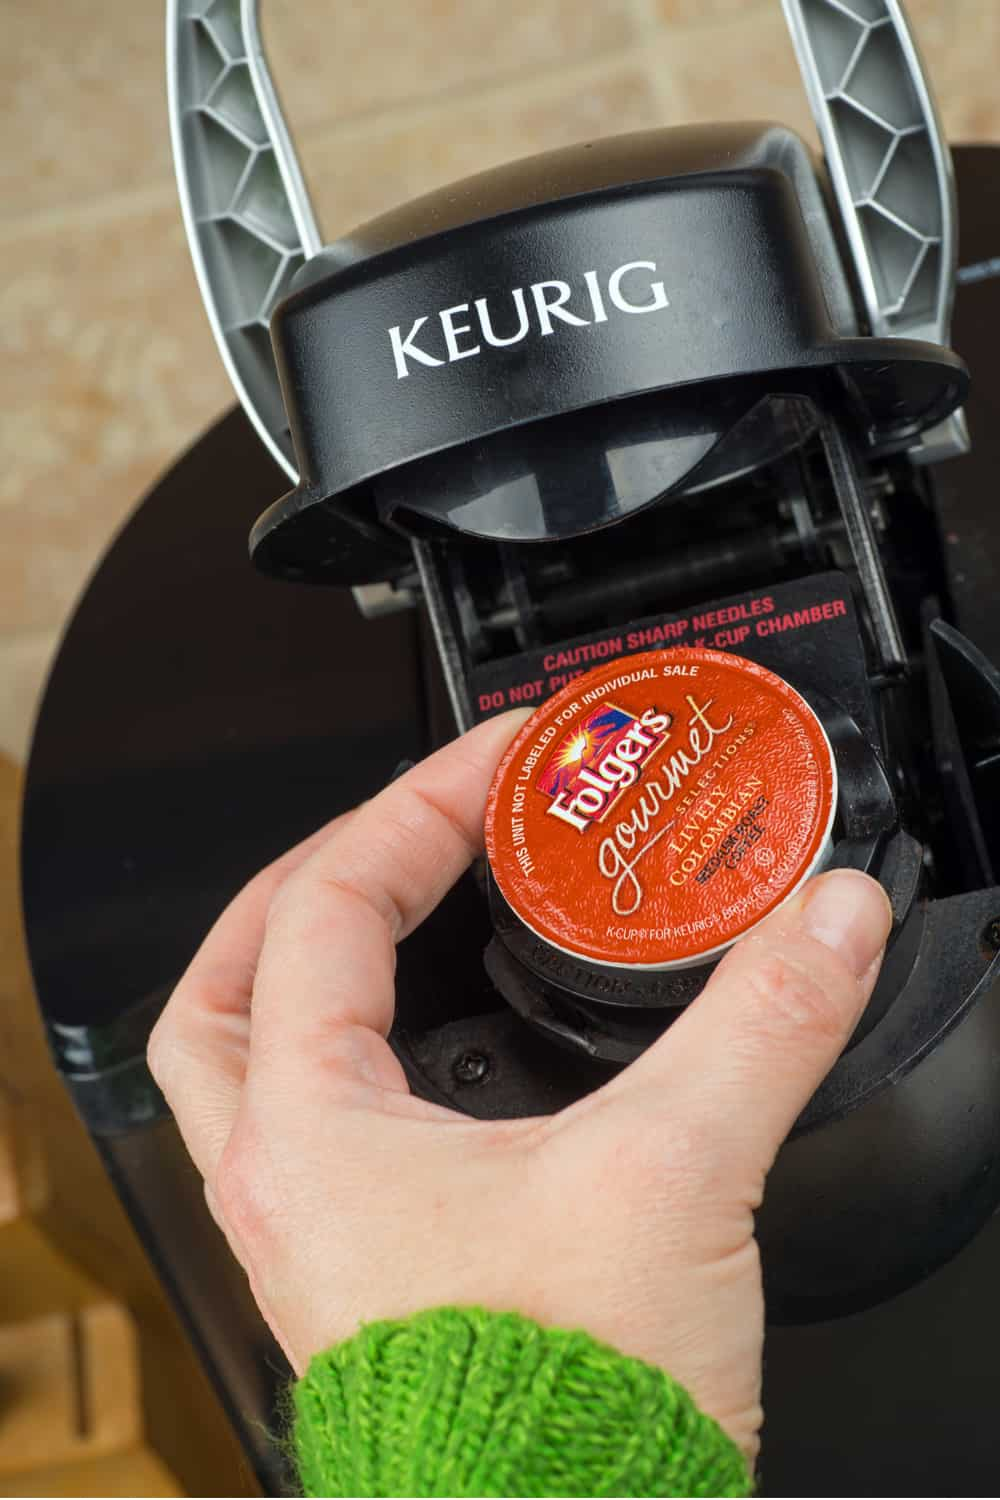 7 Easy Steps to Descale a Keurig 2.0